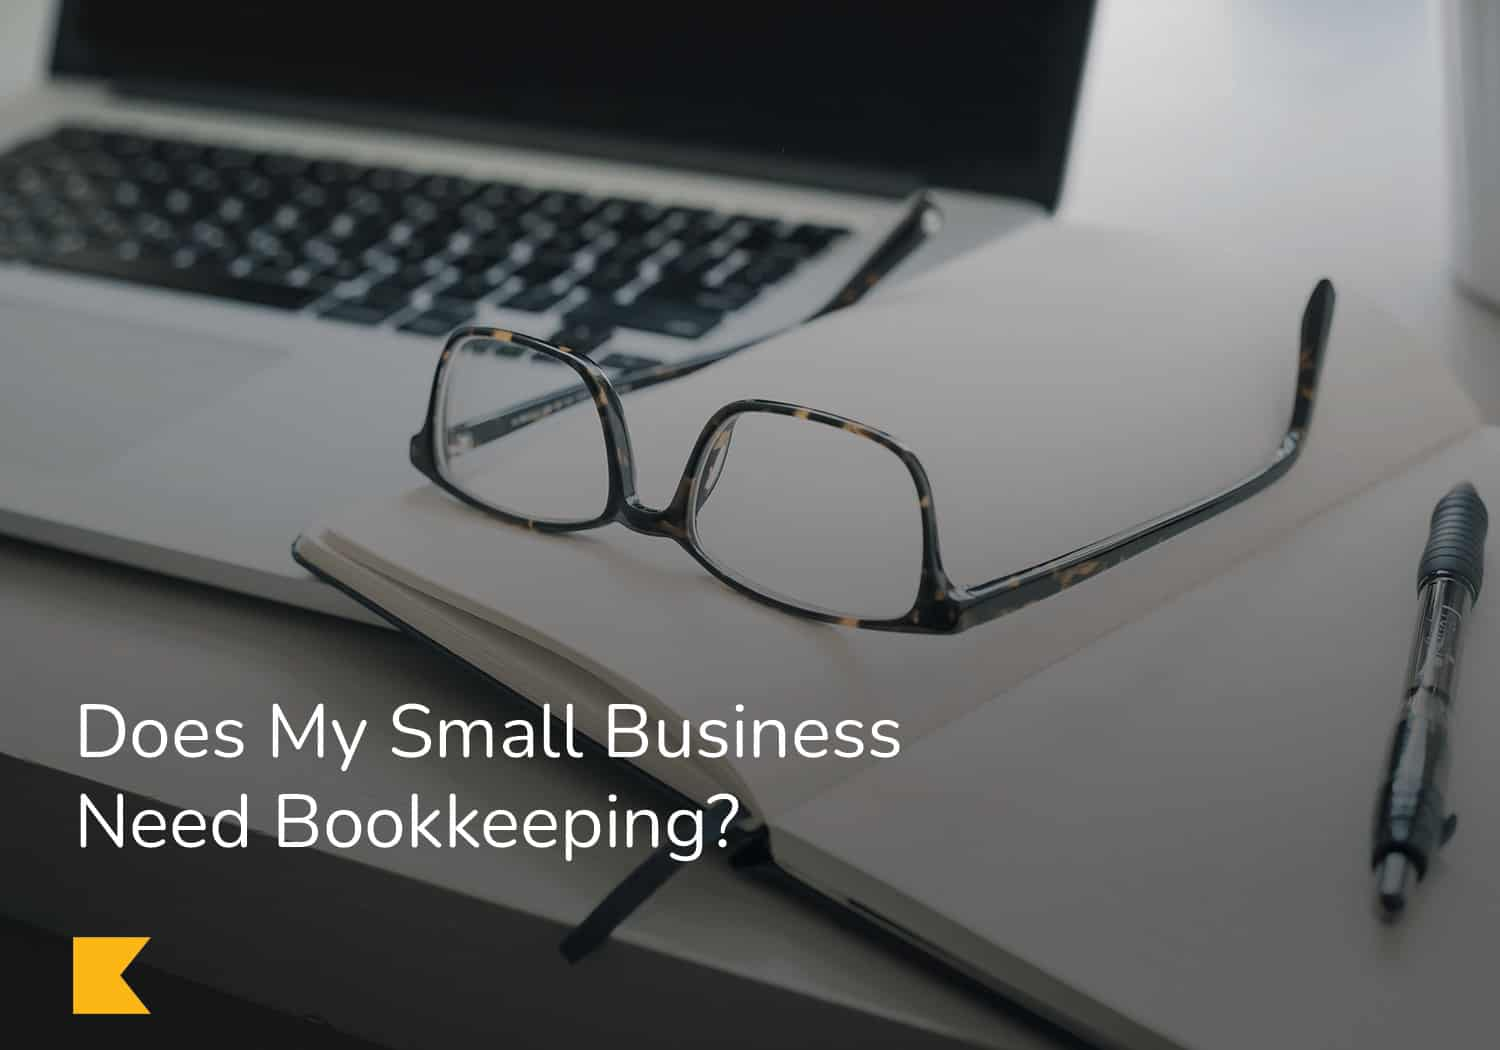 Does My Small Business Need Bookkeeping?